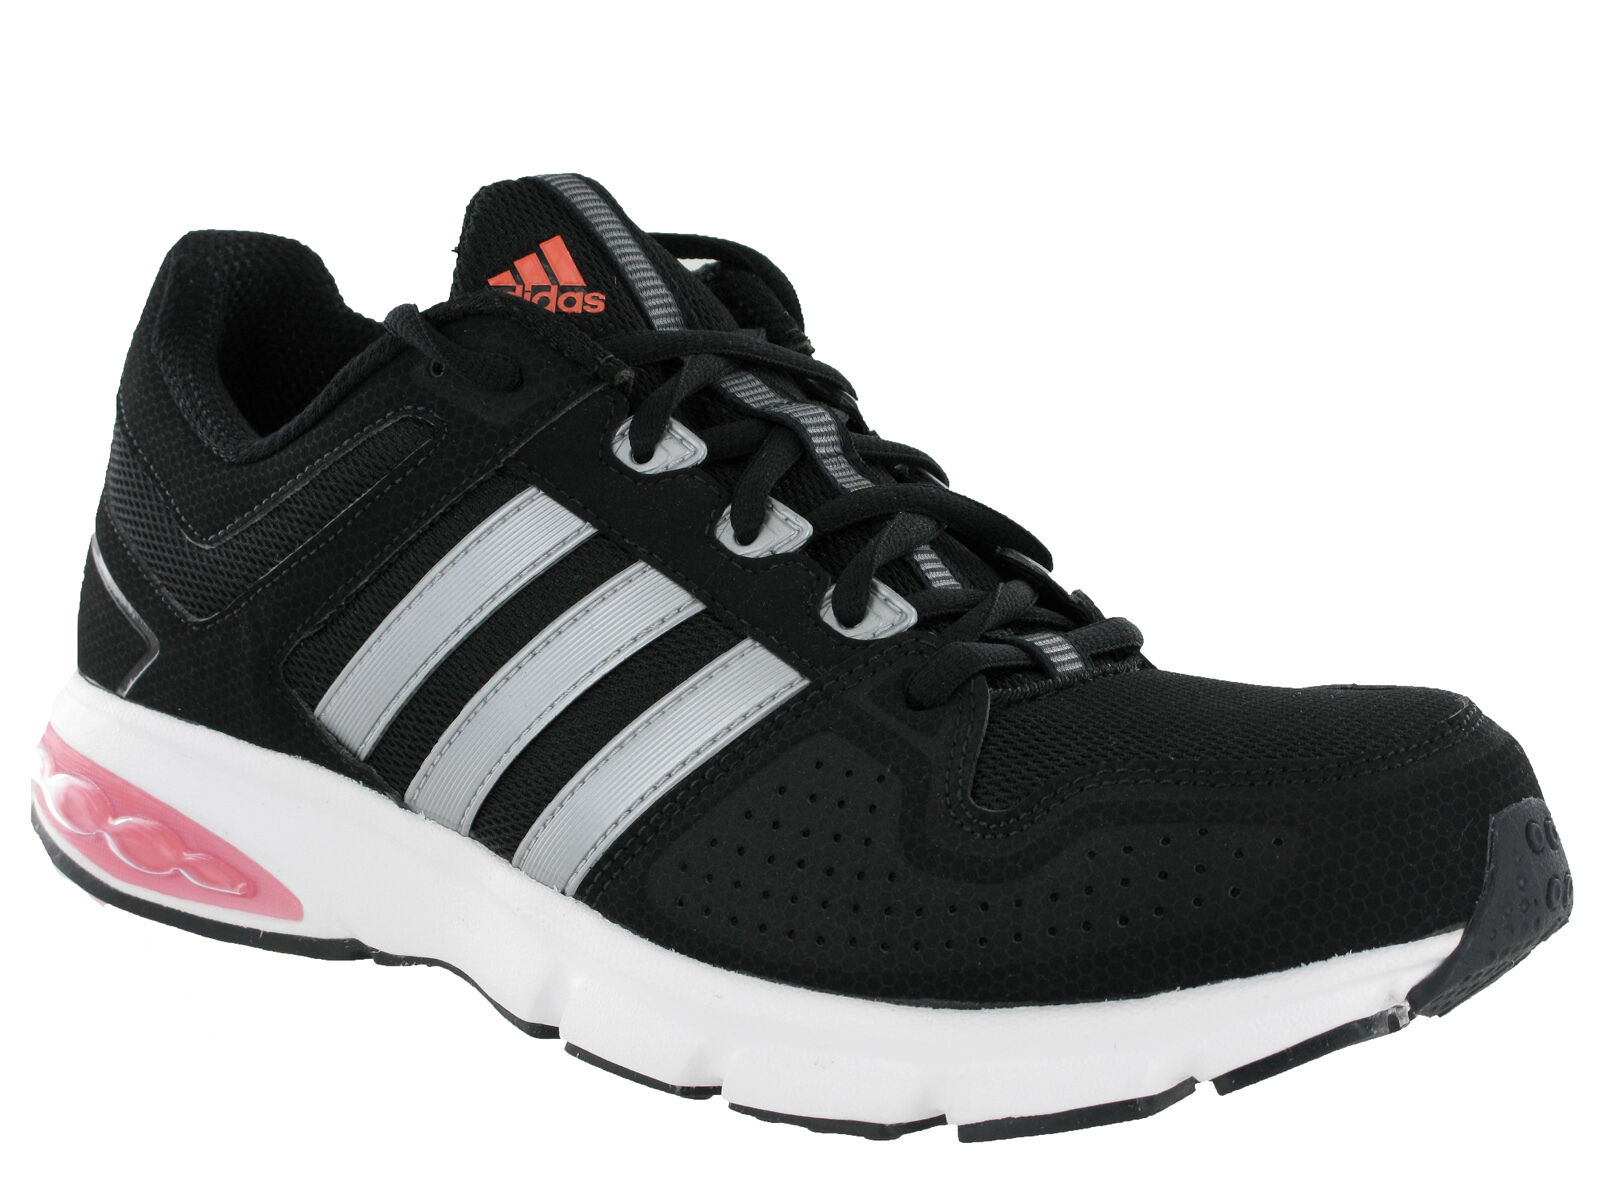 Adidas Aztec 2.0 UK7.5-12 Casual Running Sport Chaussures Lace Hommes Trainers UK7.5-12 2.0 209941